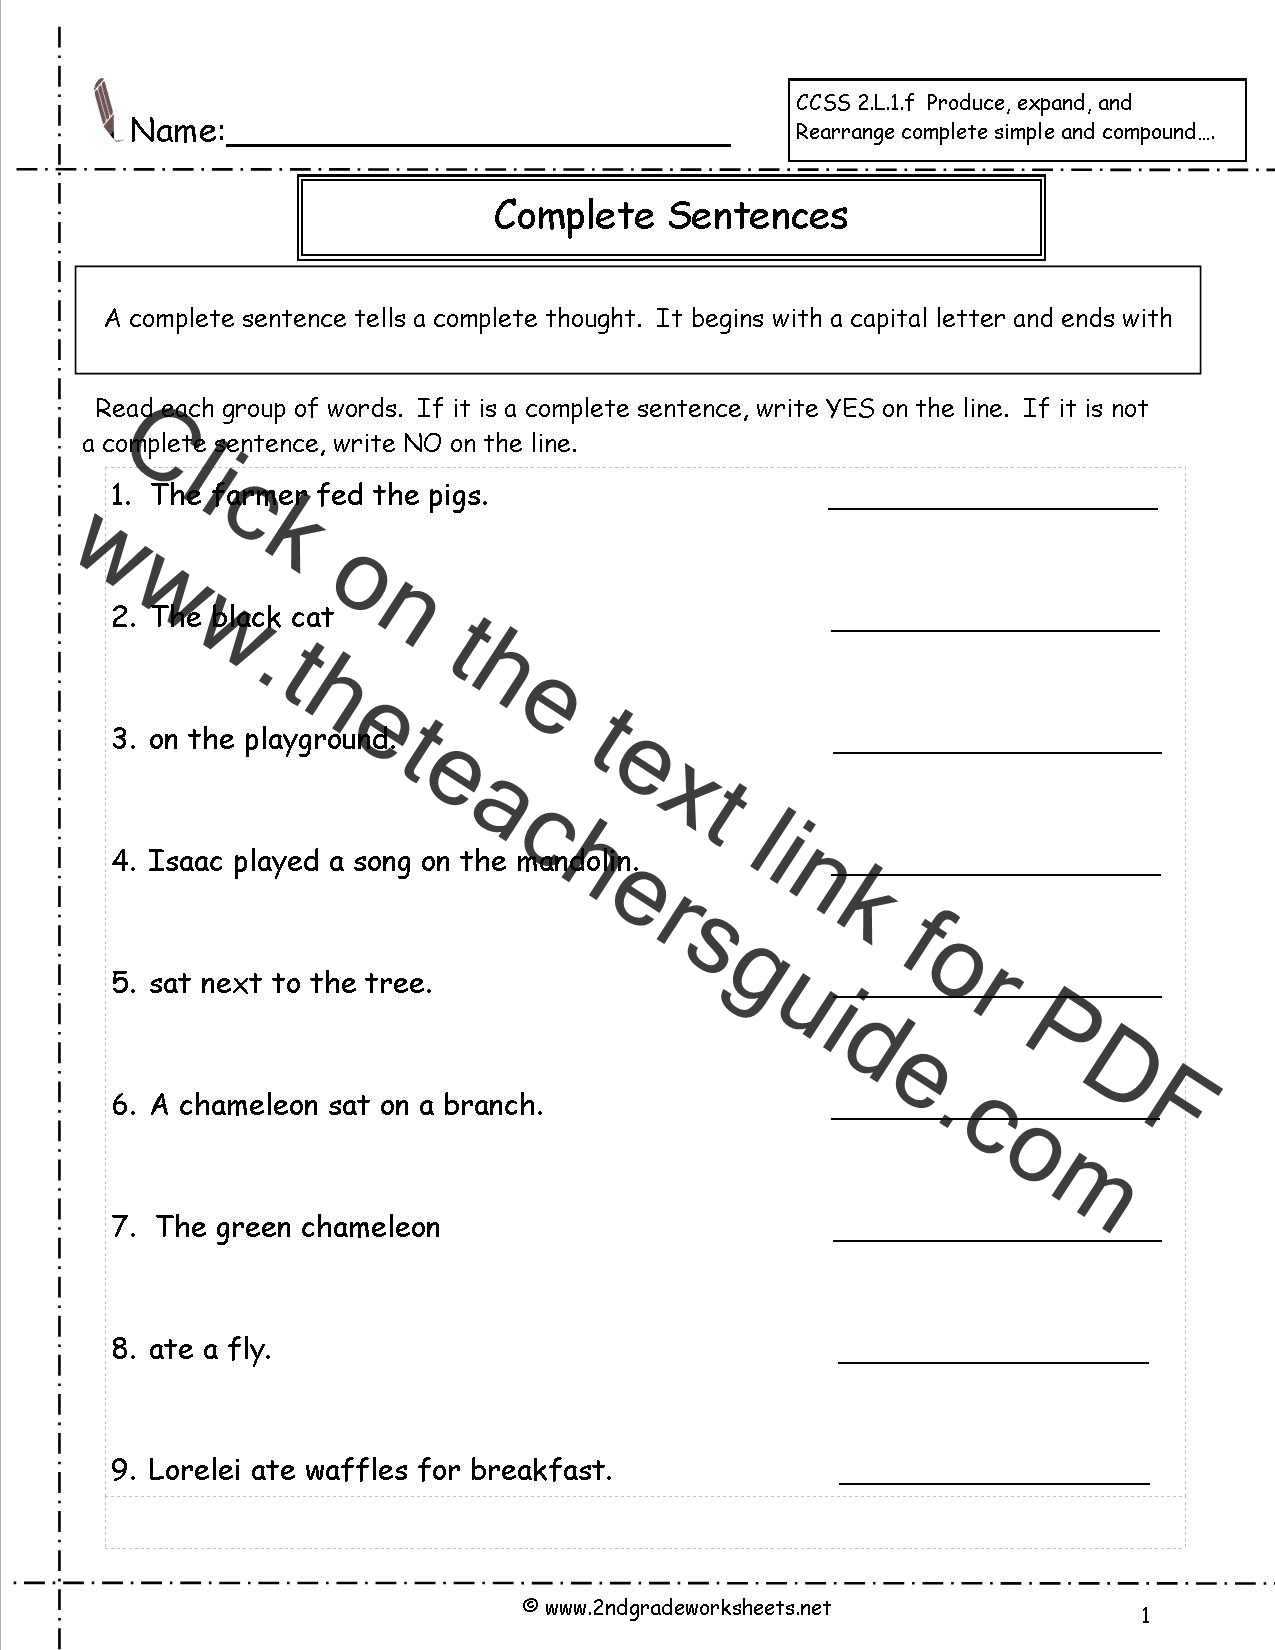 Wonders Second Grade Unit Three Week Three Printouts furthermore 2nd Grade Writing Worksheets   Free Printables   Education as well Free Worksheets Liry   Download and Print Worksheets   Free on also Free printable handwriting worksheets 2nd grade   Download them and additionally 2nd Grade Writing Worksheets   Free Printables   Education further  in addition sentence handwriting worksheets – rainbowriches co together with  additionally 2nd Grade Cursive Writing Worksheets 4th Cursive Writing G1Pb2  2nd moreover 2nd Grade Narrative Writing Prompts Worksheets Worksheet  Narrative furthermore Pre Worksheets Alphabet Free Writing For 5th Grade Letter Hunt likewise  in addition 2ndgradeworksheets in addition 2ndgradeworksheets further 2nd Grade Writing Worksheets   Q O U N furthermore . on writing worksheets for 2nd grade